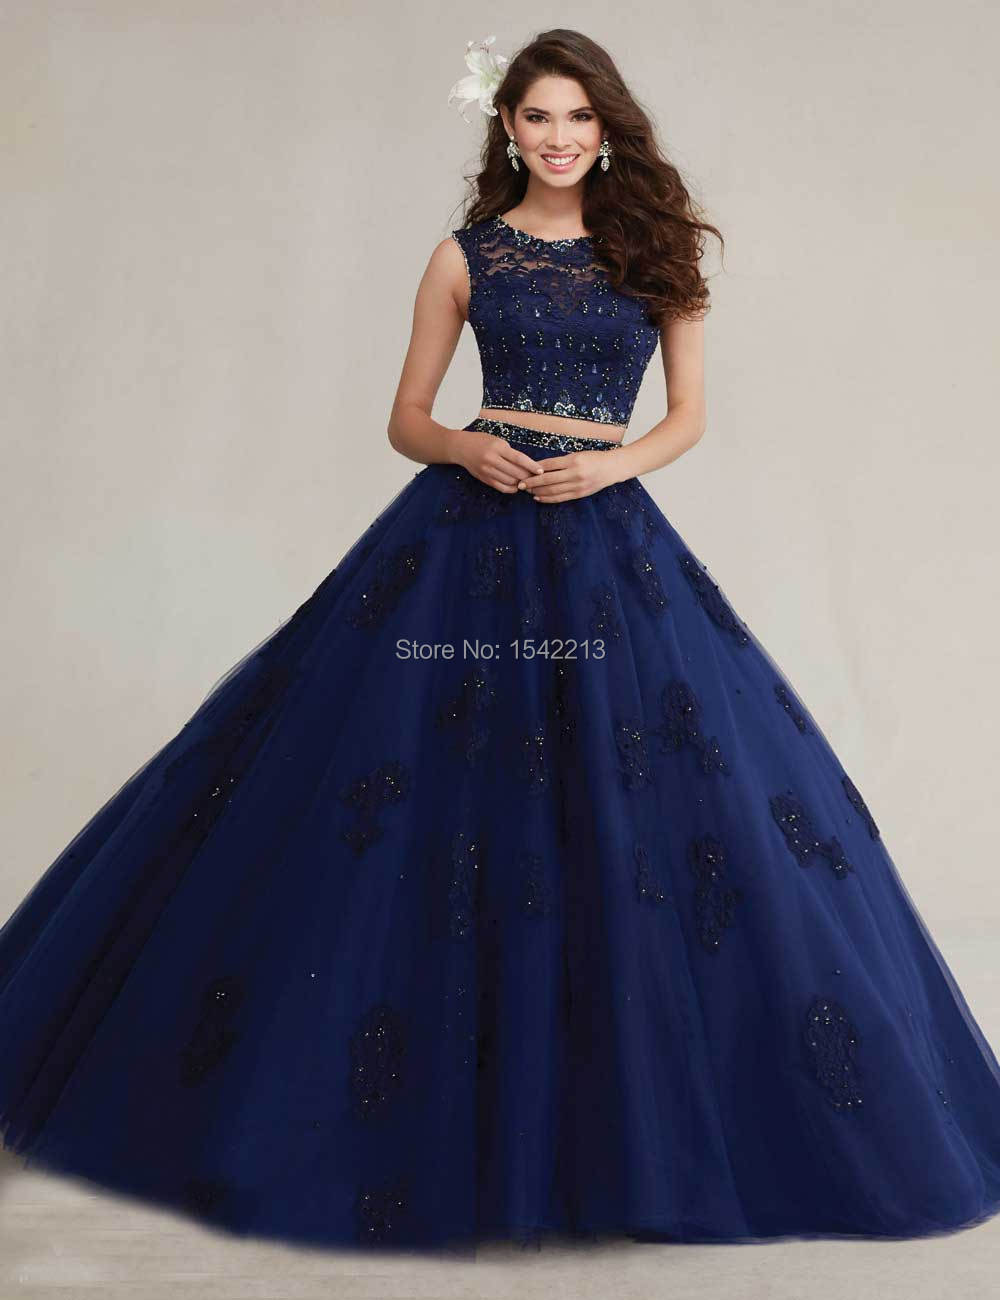 Aliexpress.com : Buy Navy Blue Pink Lace Beaded Quinceaneran Dress ...